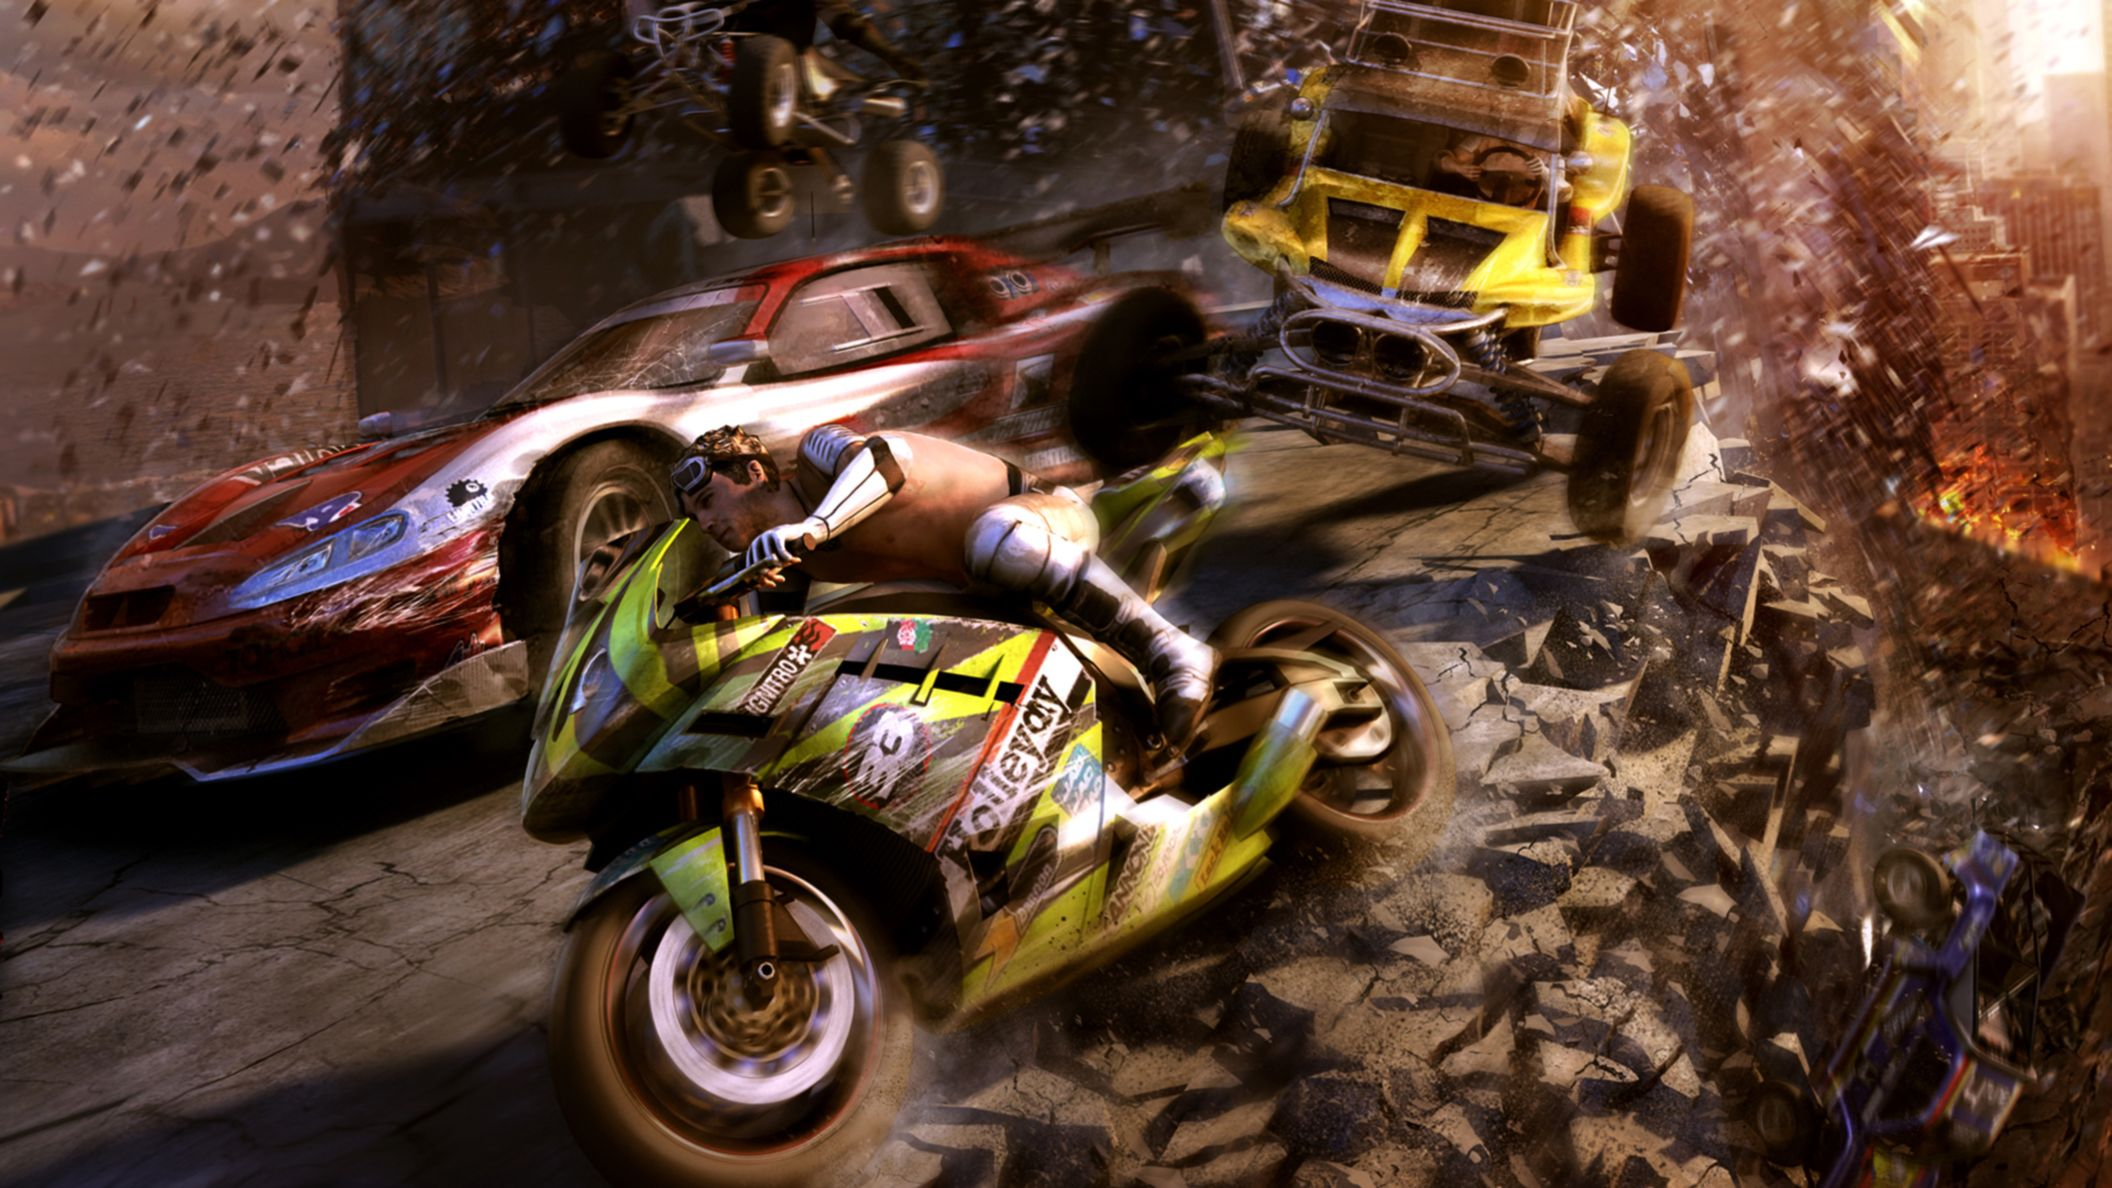 Download free HD Motorstorm Apocalypse HD Wallpaper, image